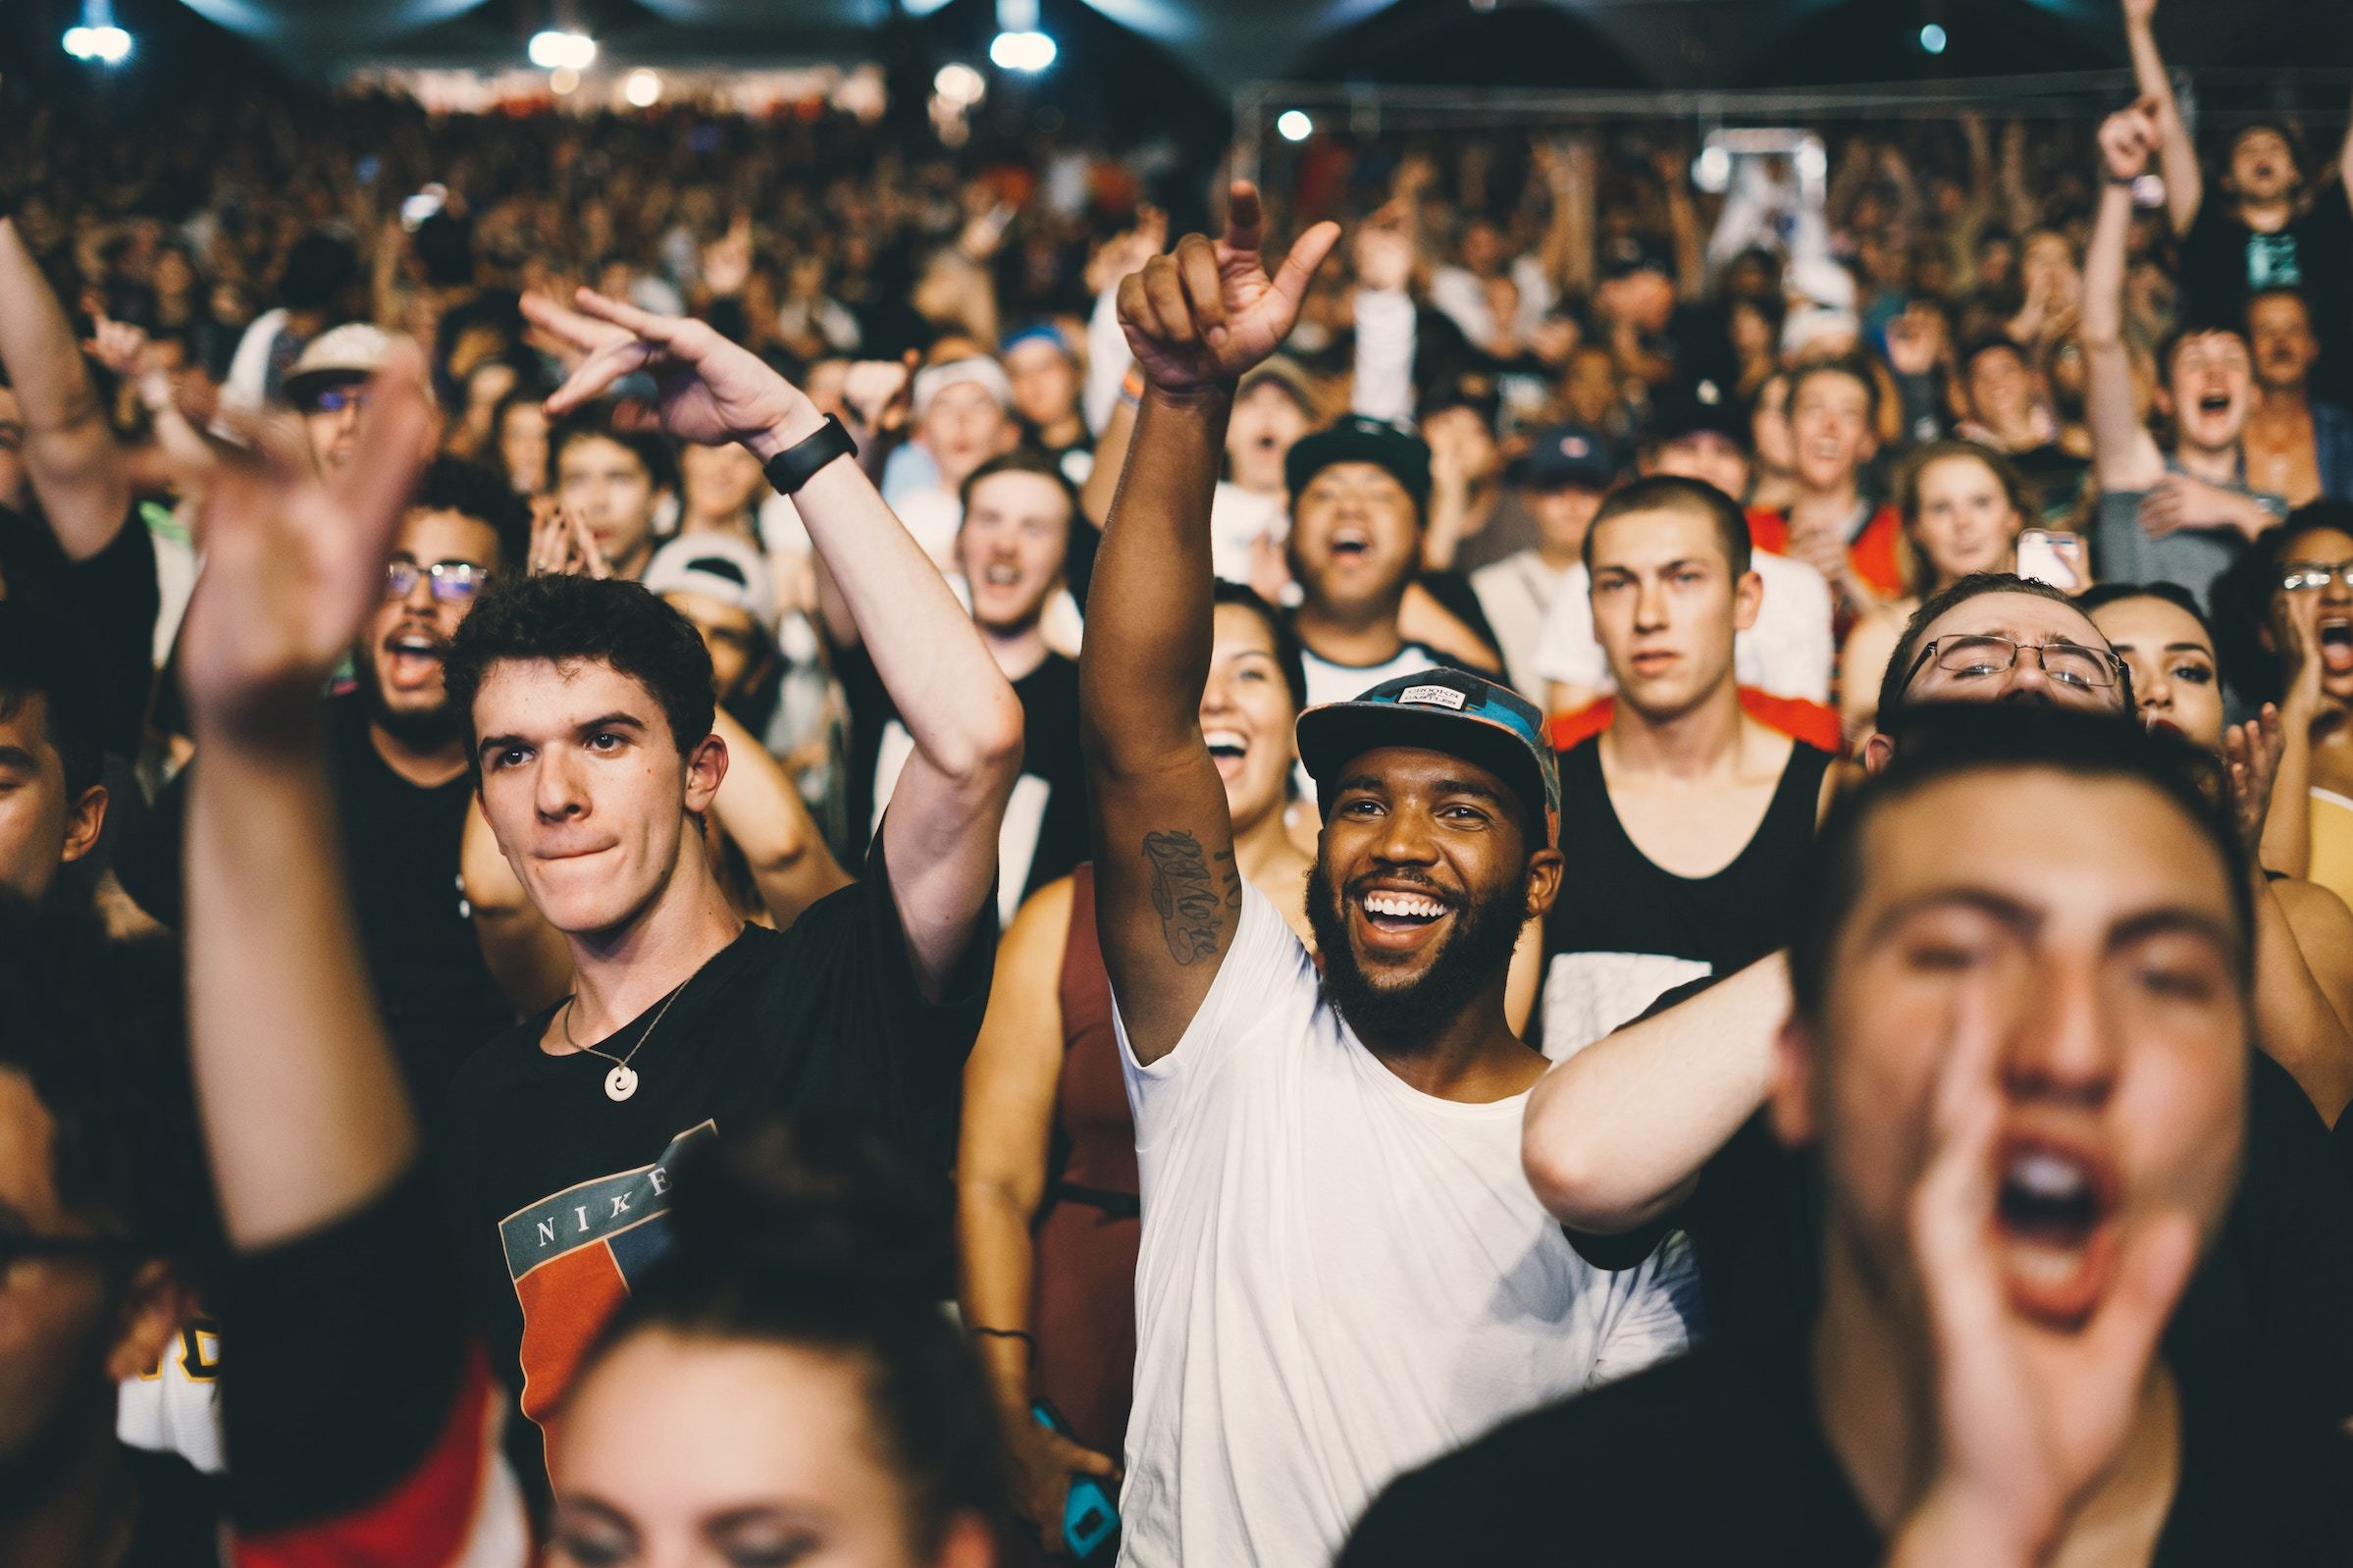 Crowd at an event, cheering